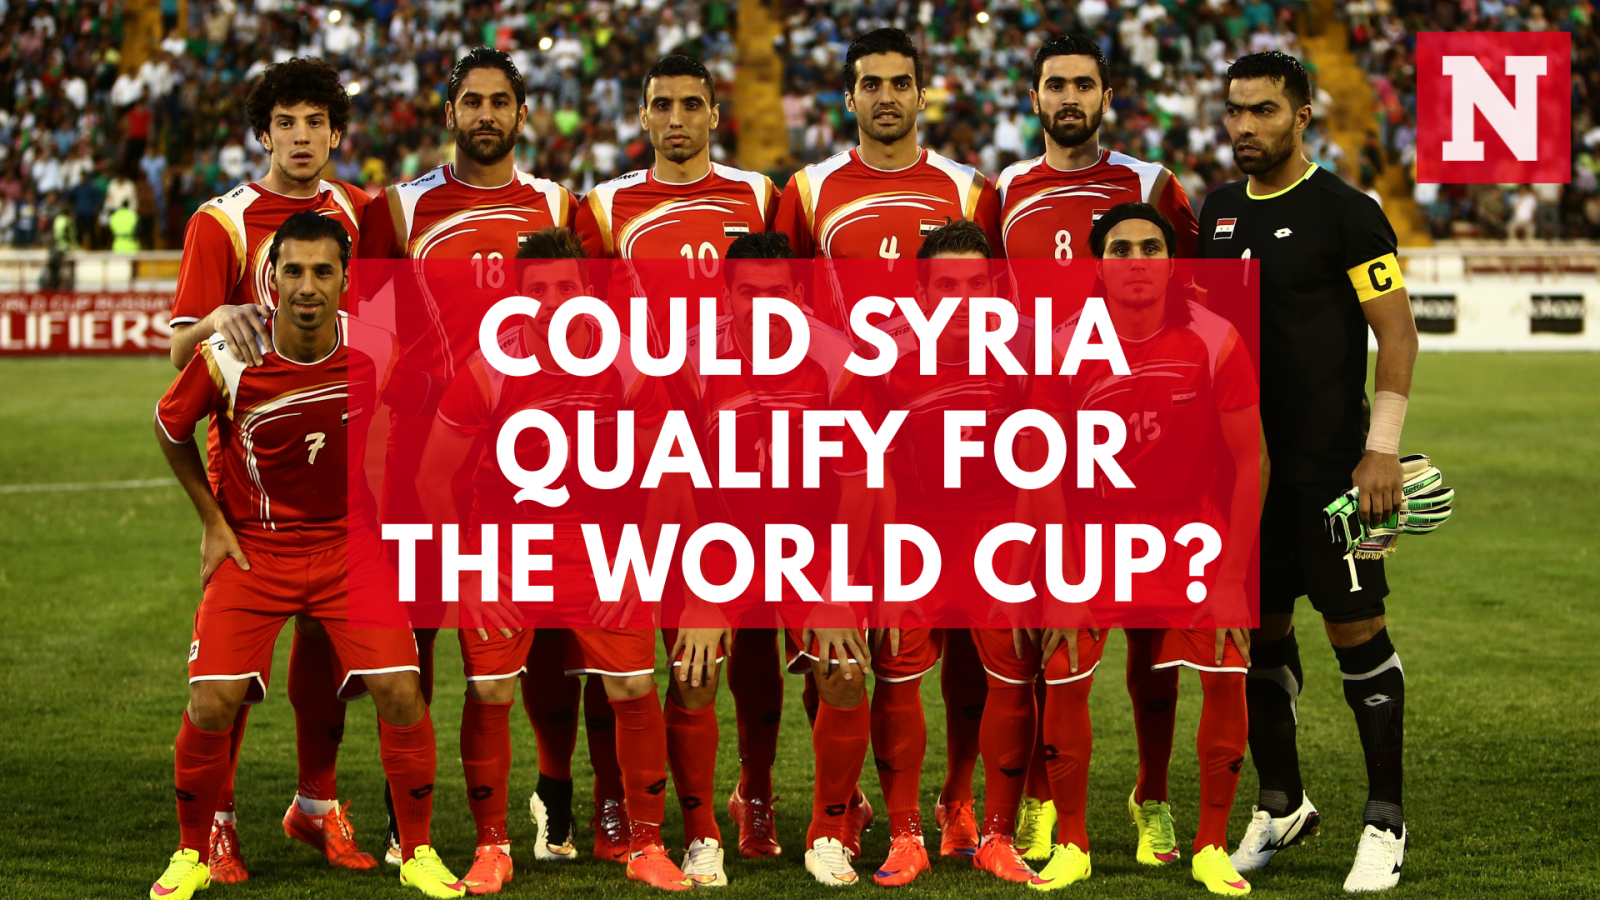 Could Syria Qualify For The World Cup?